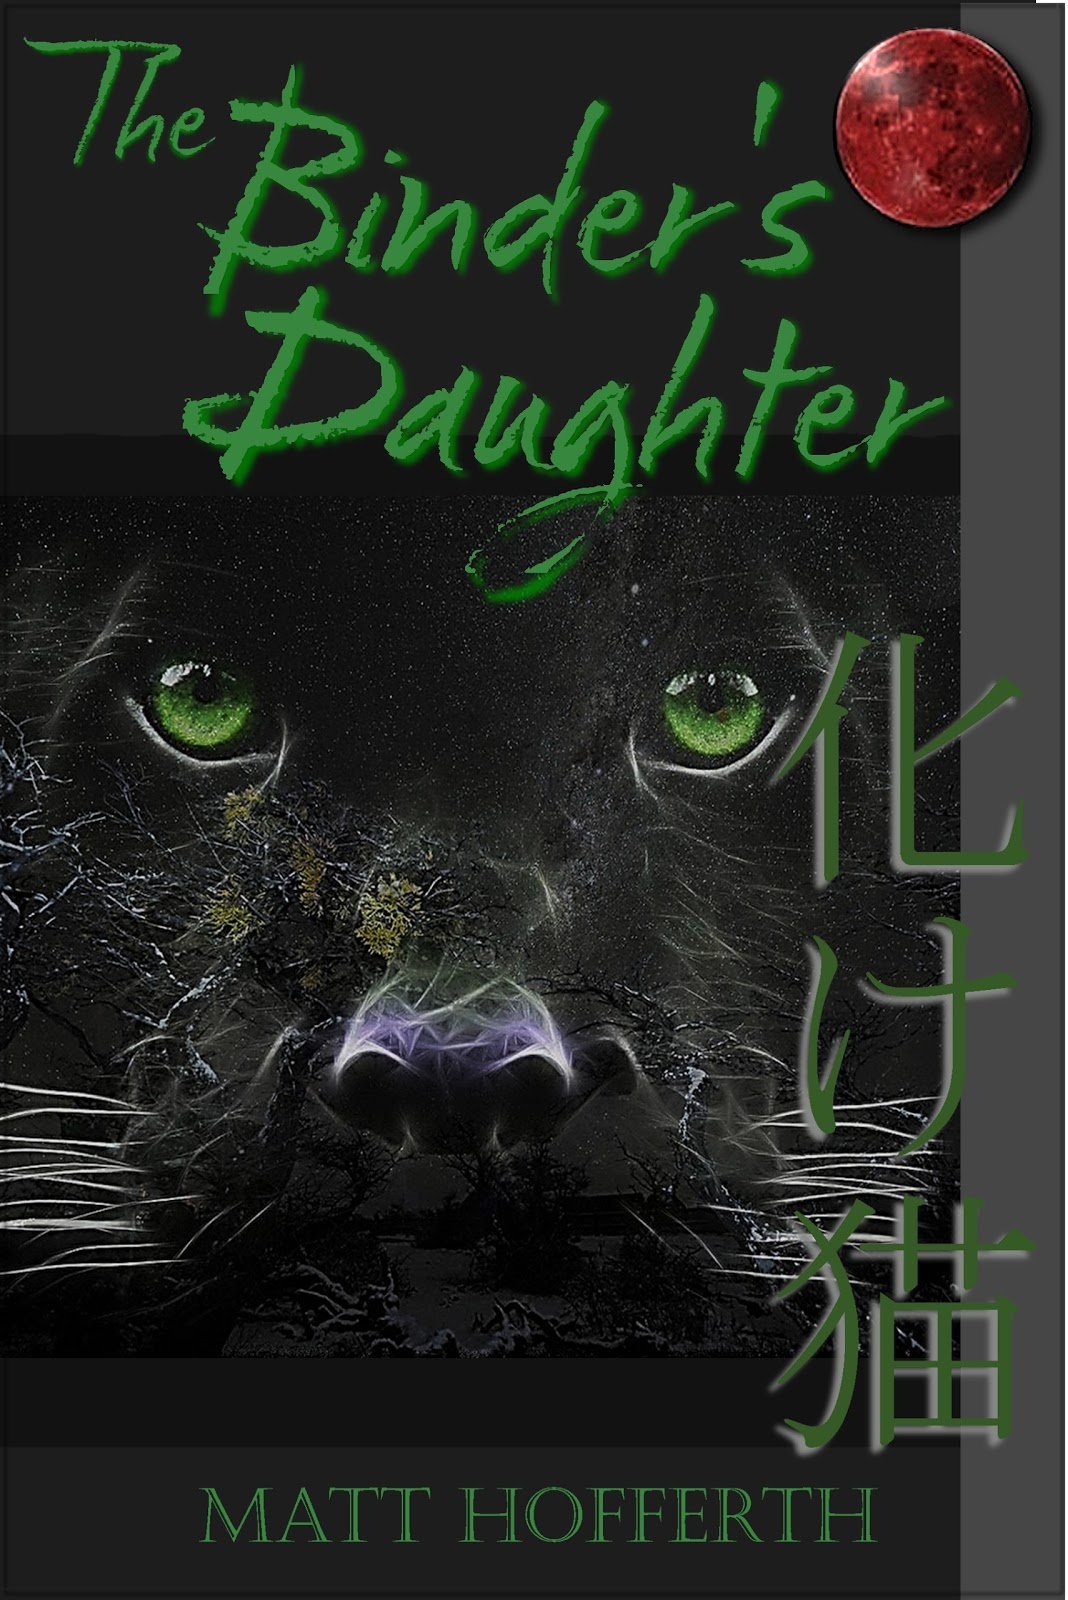 The Binder's Daughter